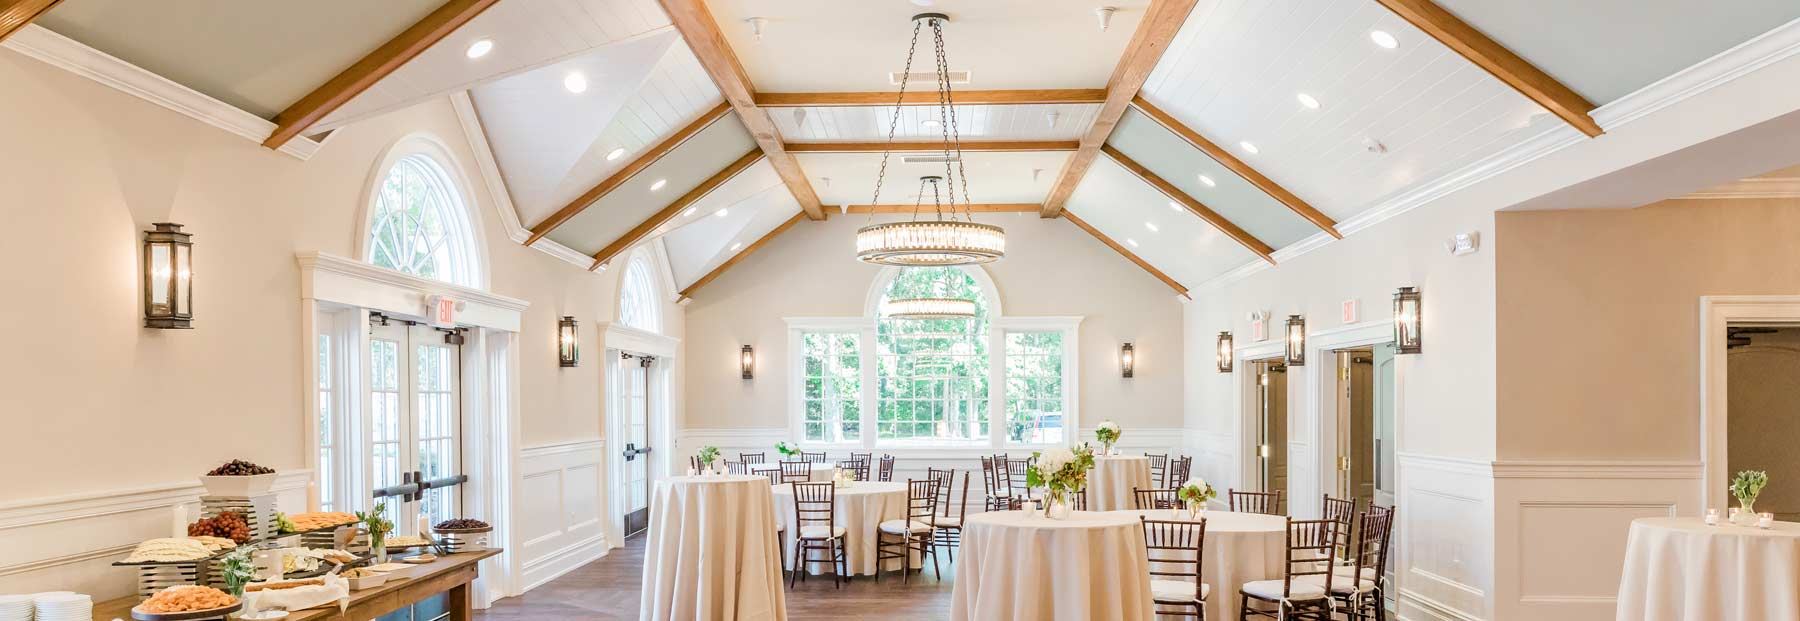 Event Space in South Jersey